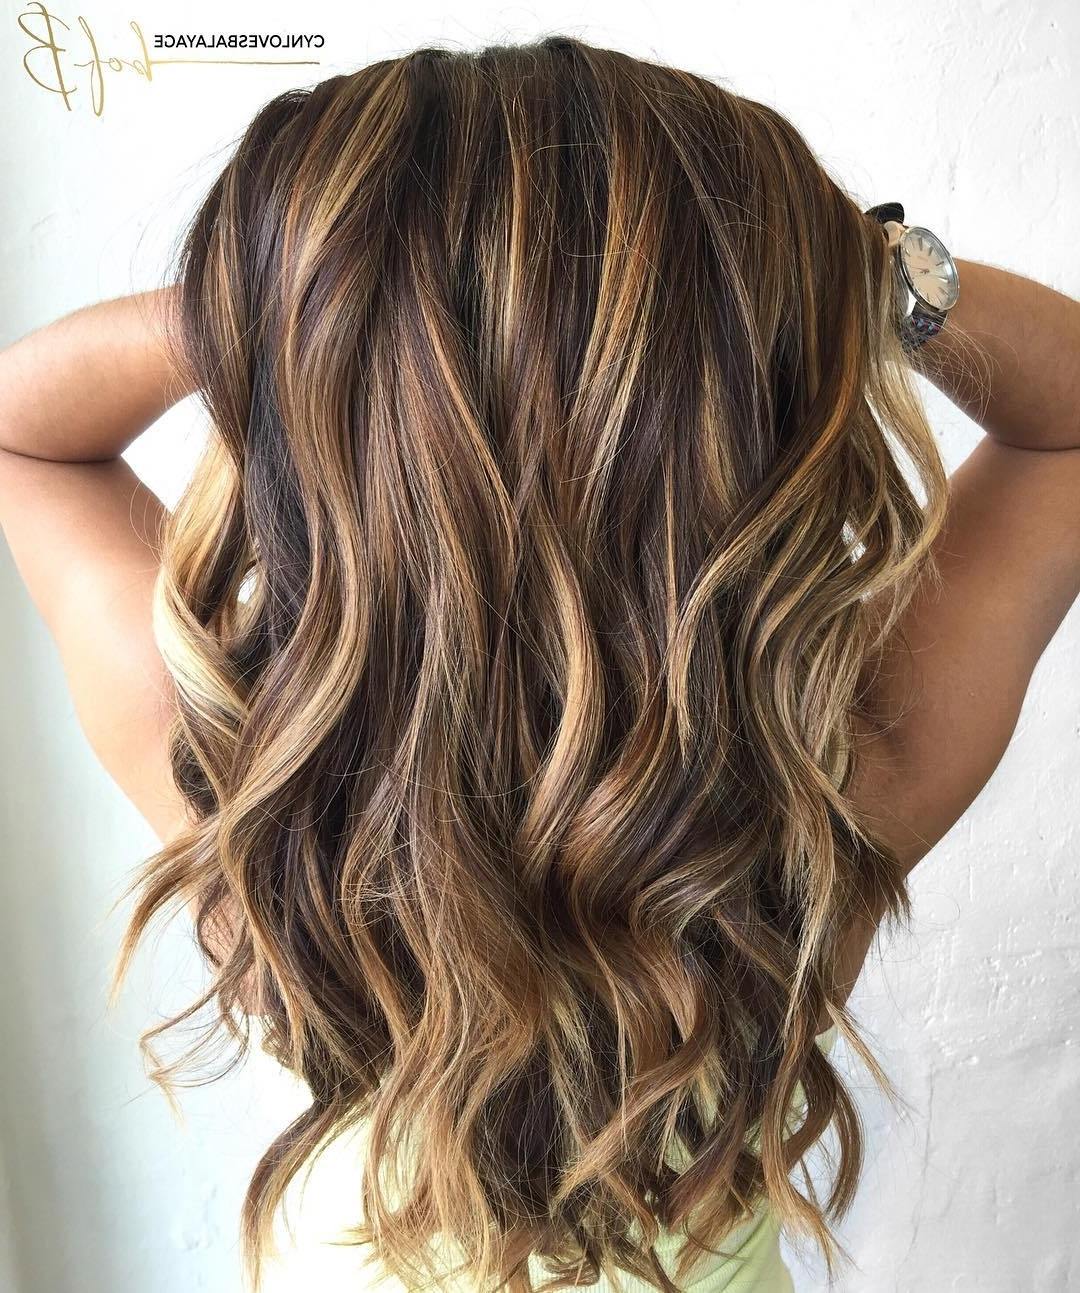 Favorite Caramel Blonde Hairstyles With 60 Looks With Caramel Highlights On Brown And Dark Brown Hair (View 14 of 20)